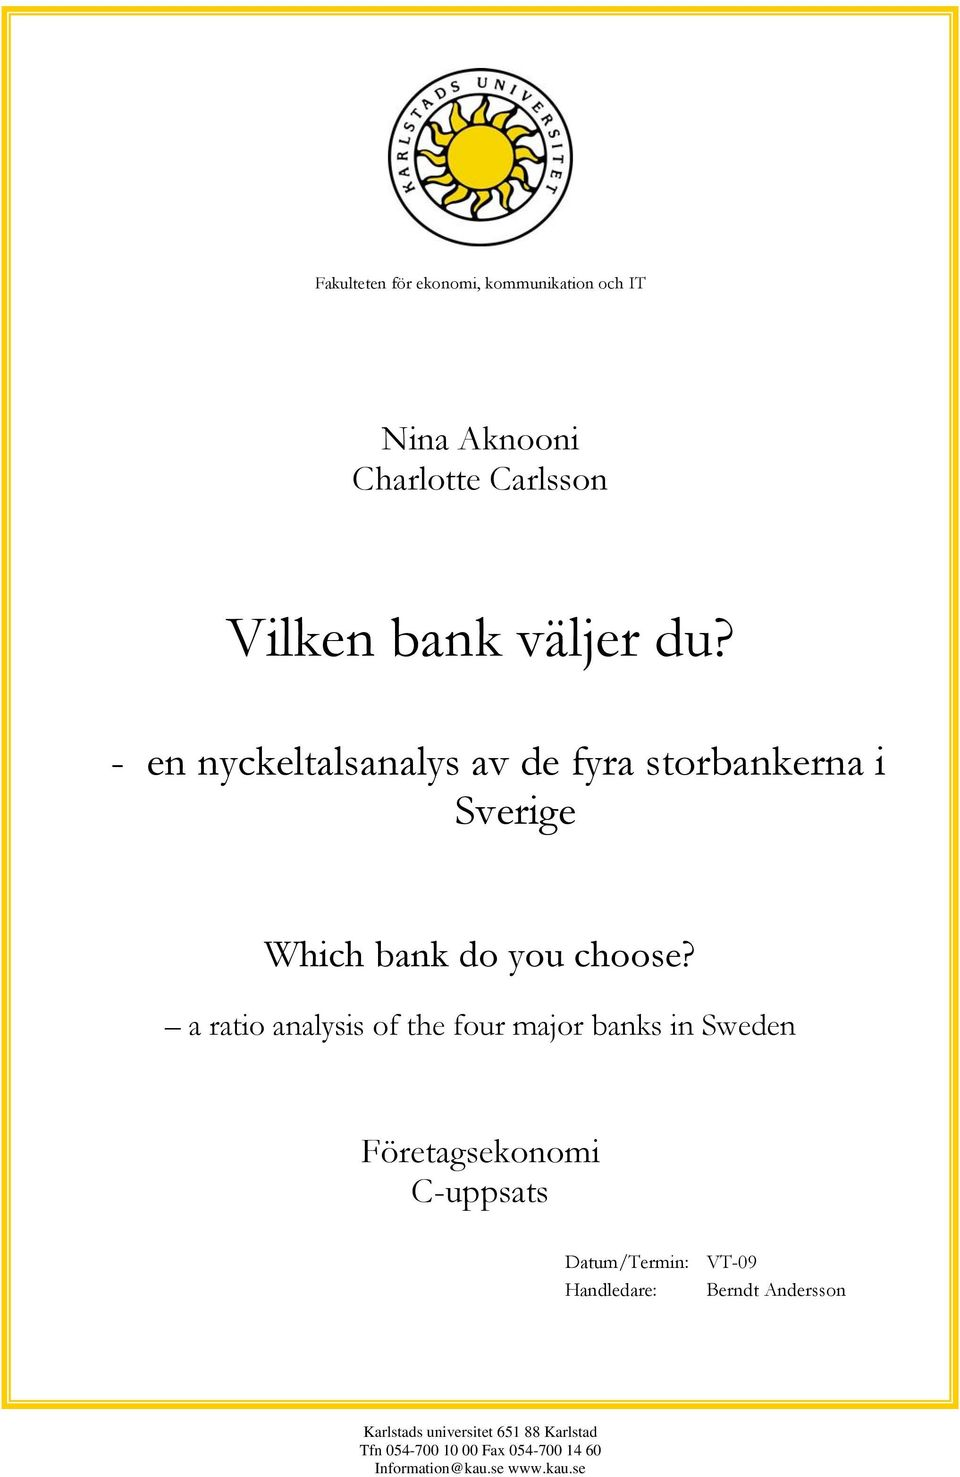 a ratio analysis of the four major banks in Sweden Företagsekonomi C-uppsats Datum/Termin: VT-09